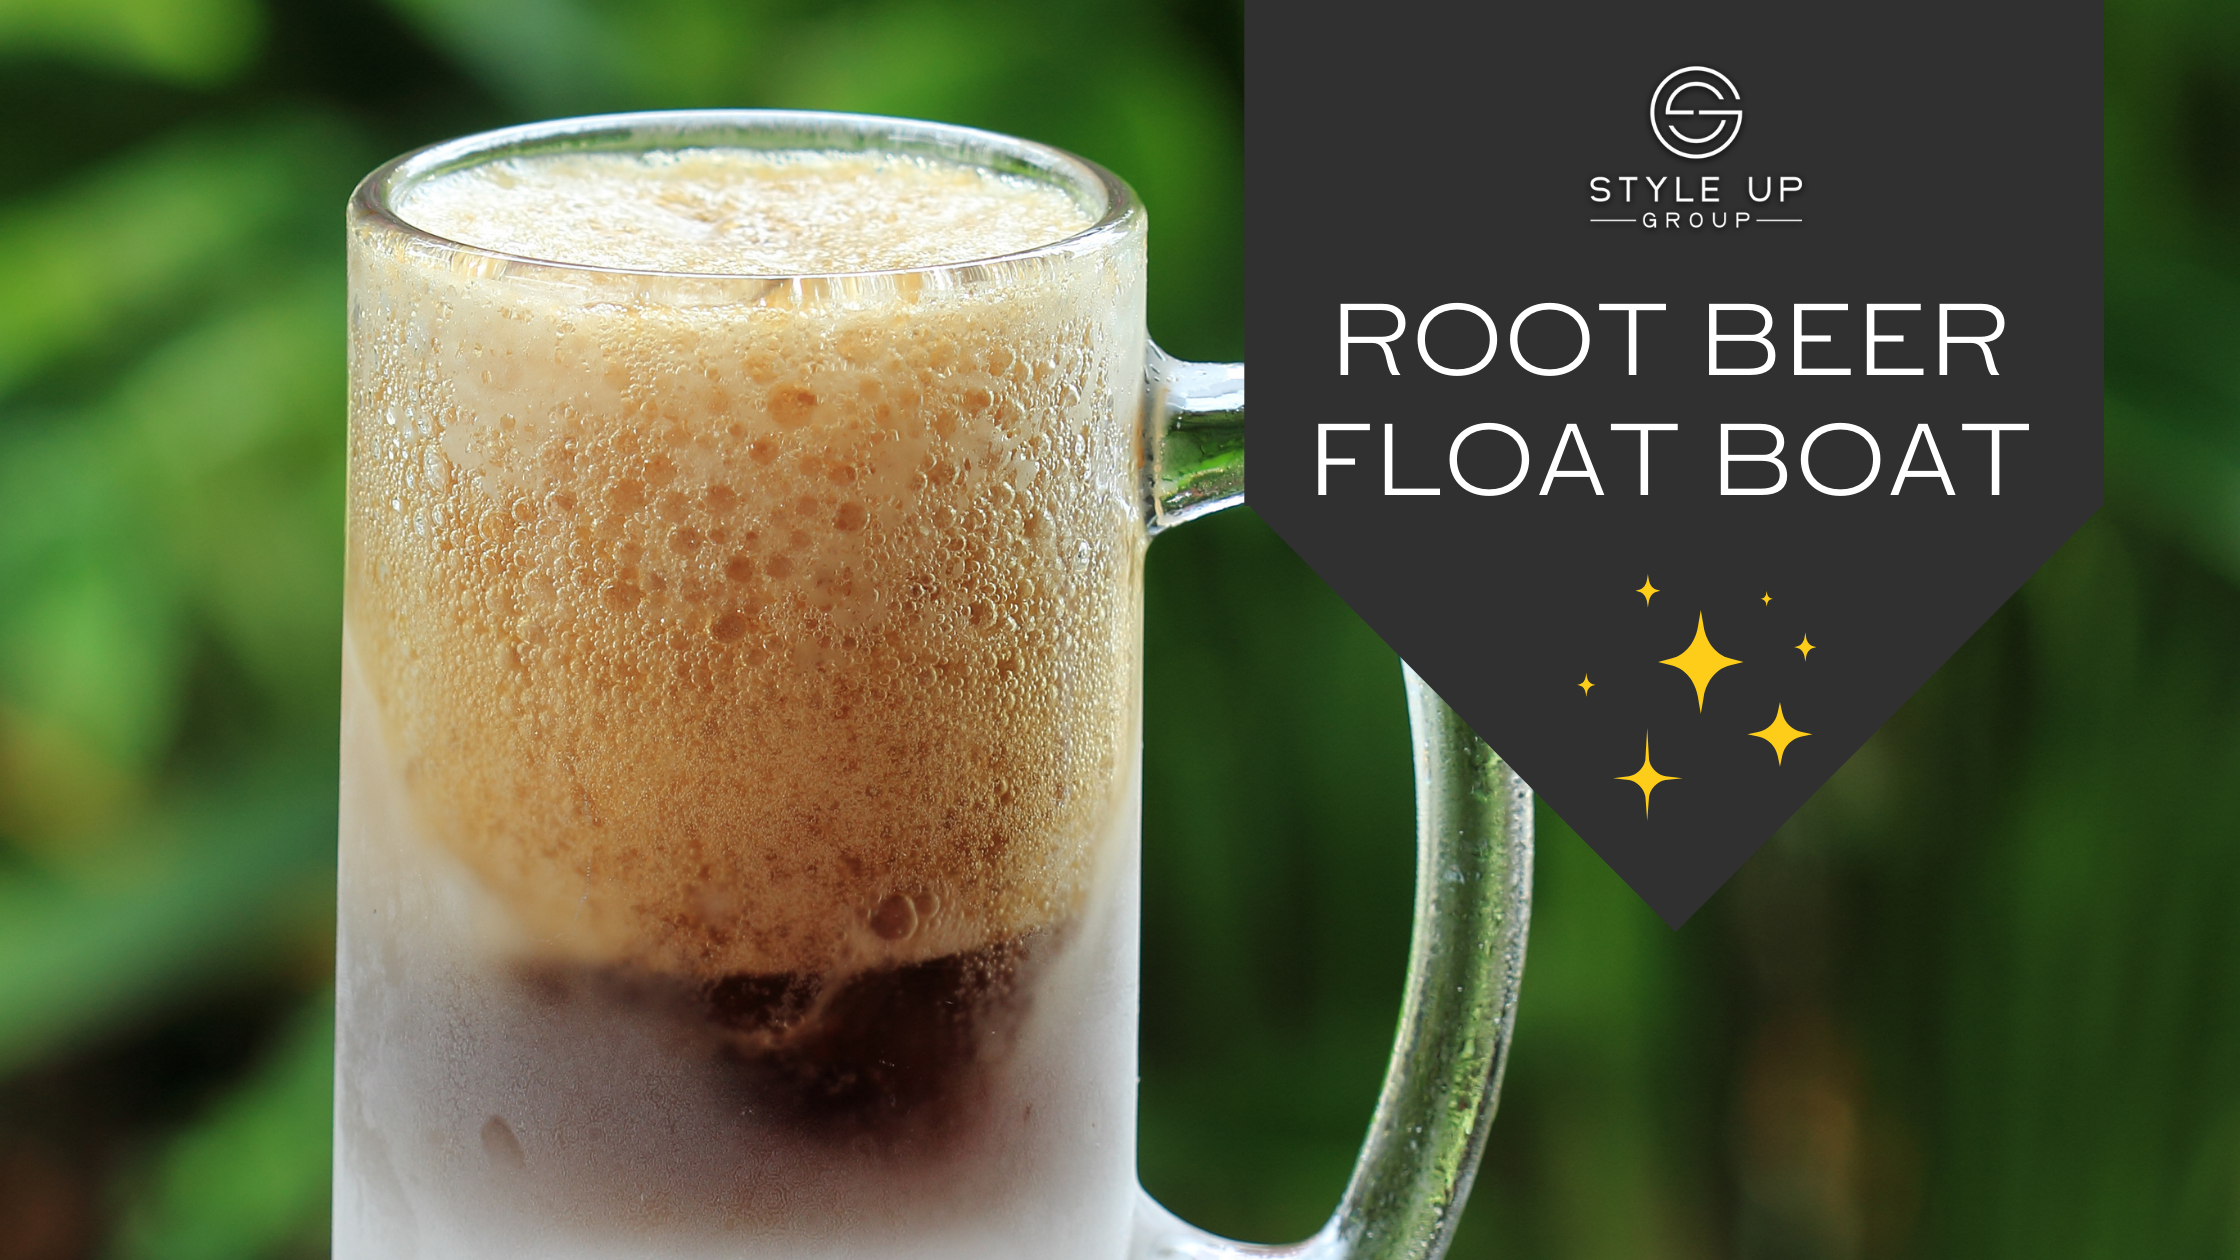 Style Up To Go - root beer